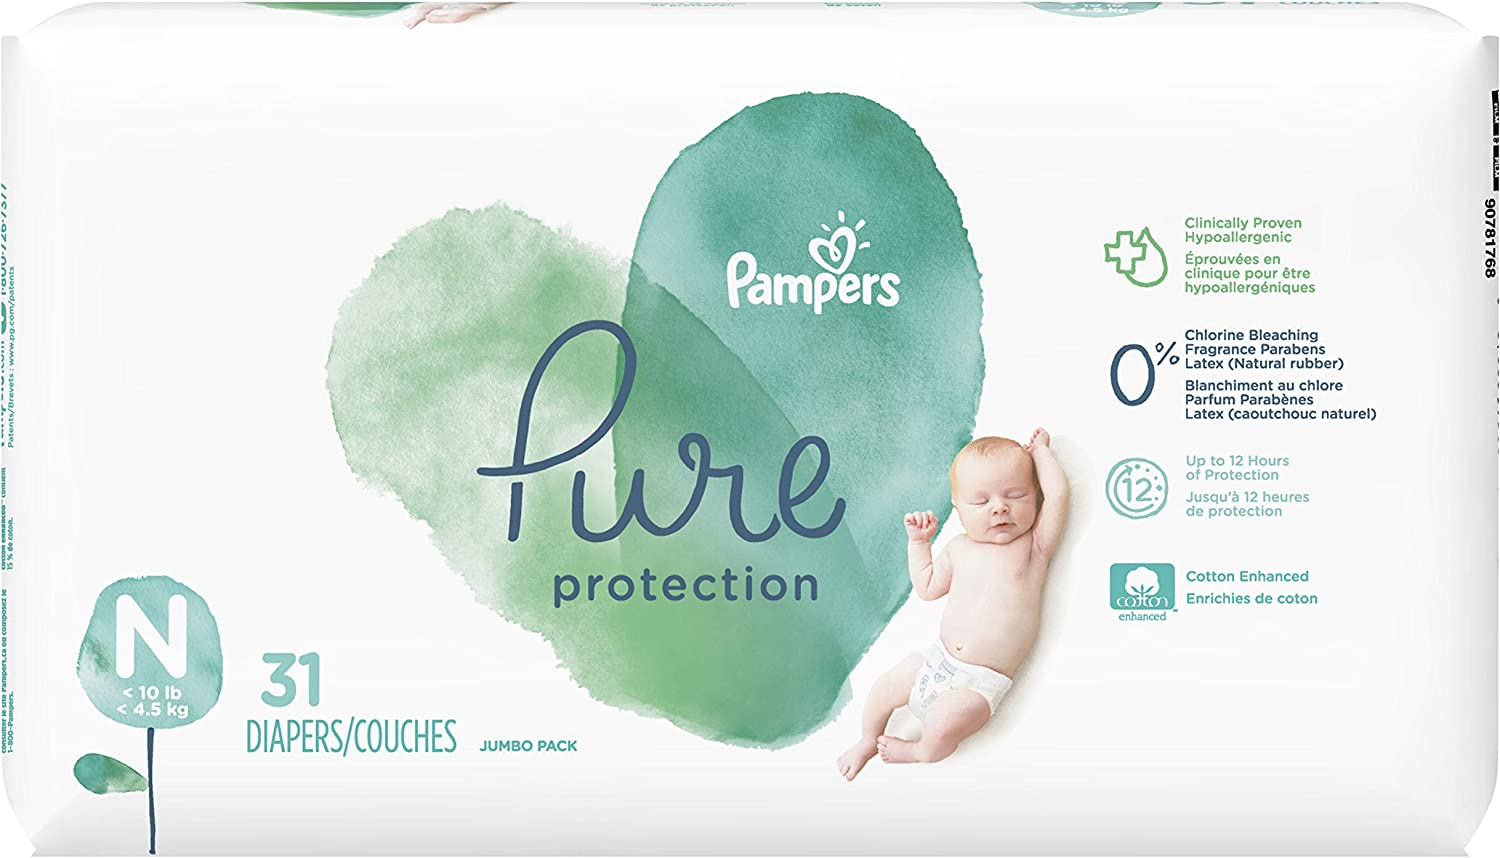 Diapers Newborn/Size 0 (<10 lb), 31 Count - Pampers Pure Protection Disposable Baby Diapers, Jumbo Pack